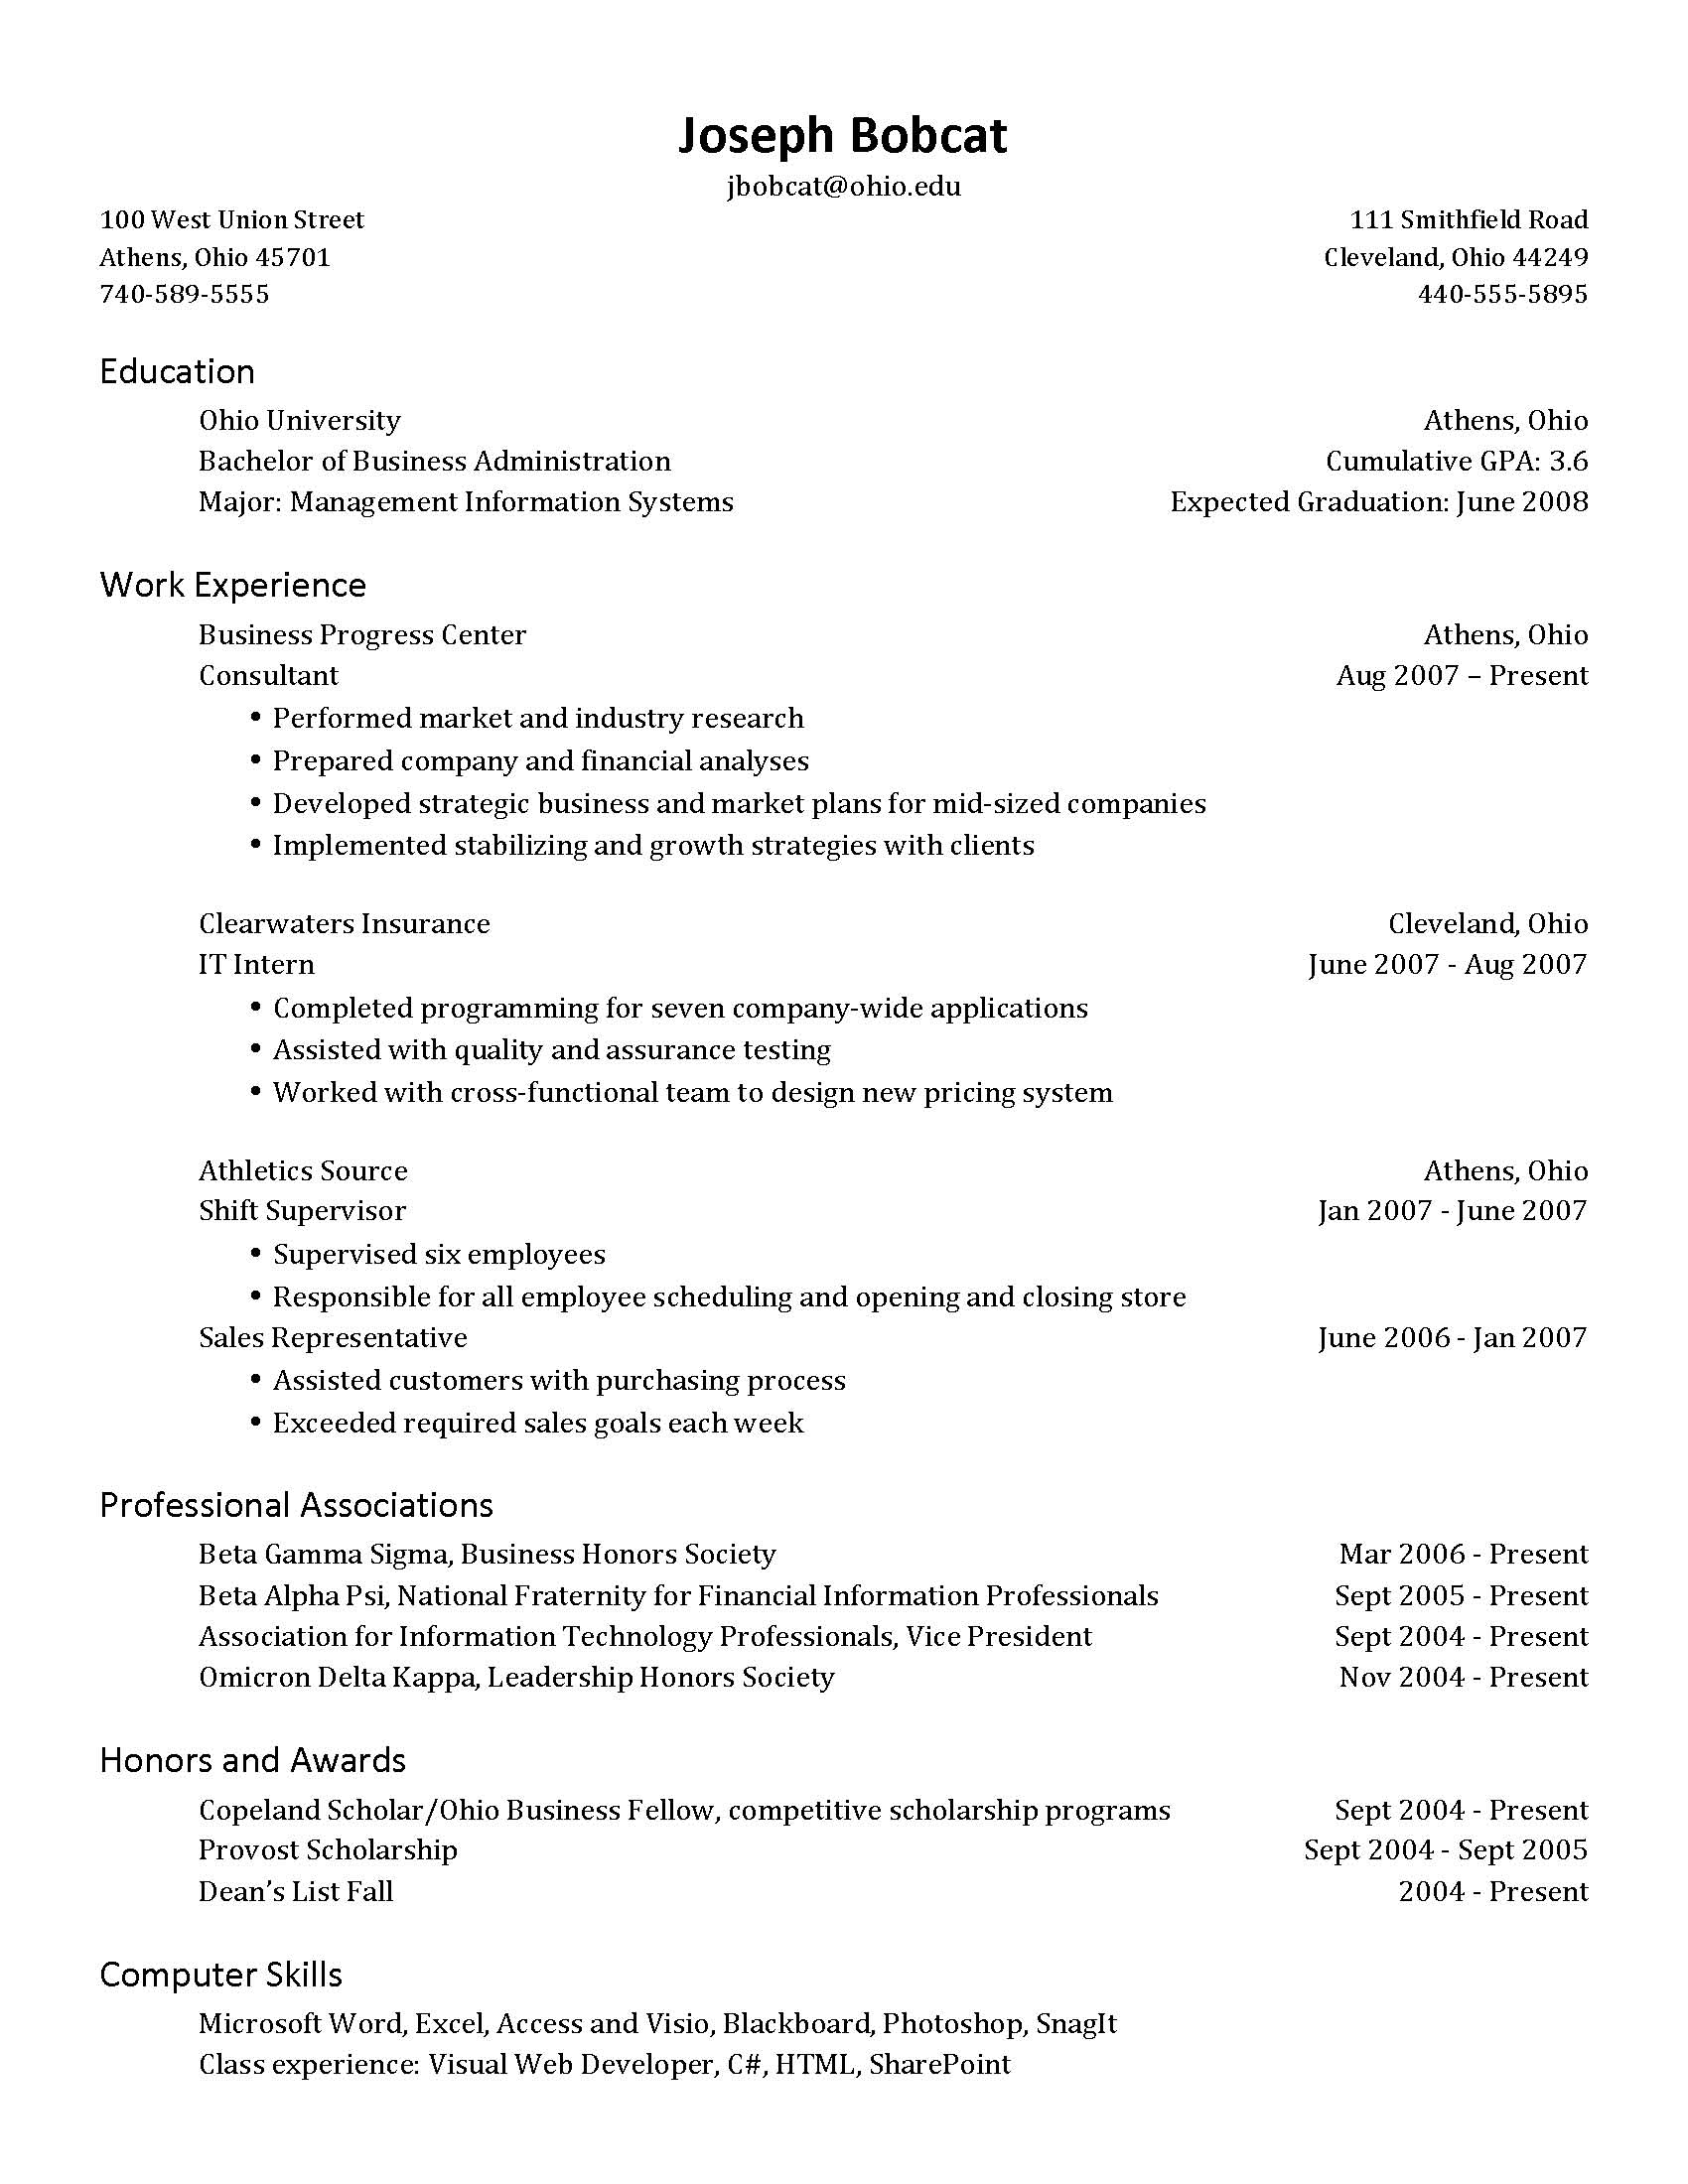 l2 assignment resume design - How Do You Make A Cover Letter For A Resume